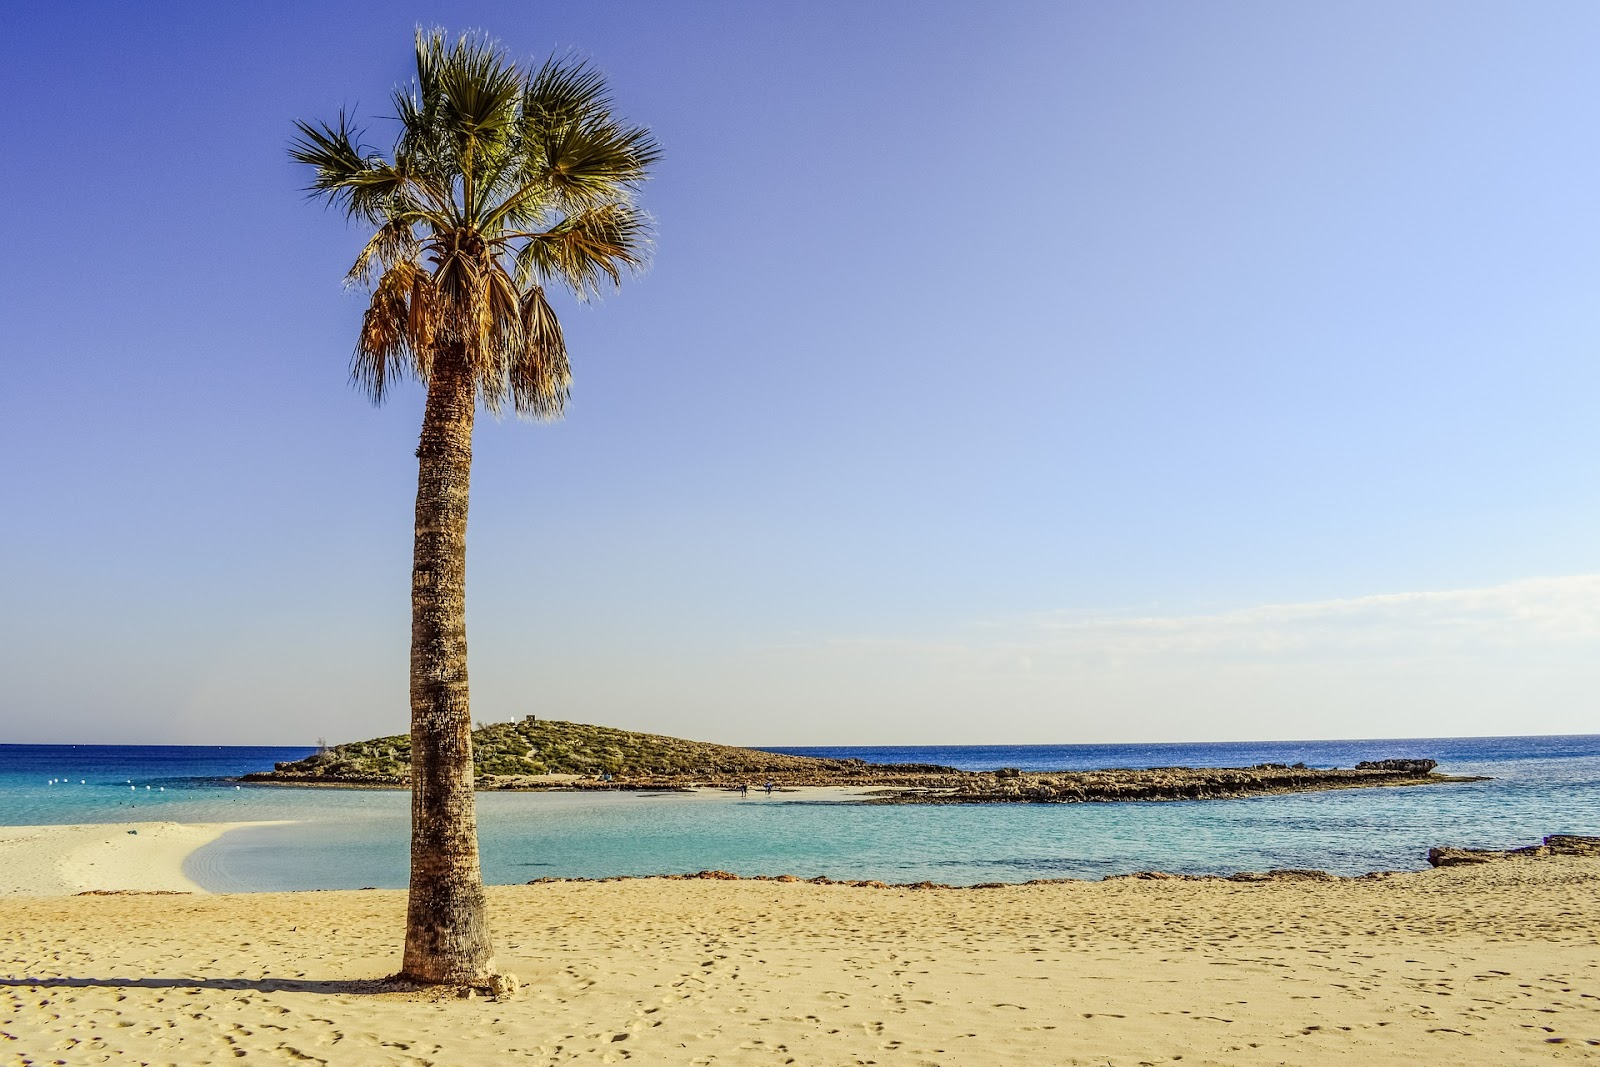 nissi beach cyprus, crystal-clear water on an empty day. small island connected with sandy path. one palm tree on sand, no tourists. sunrise in cyprus